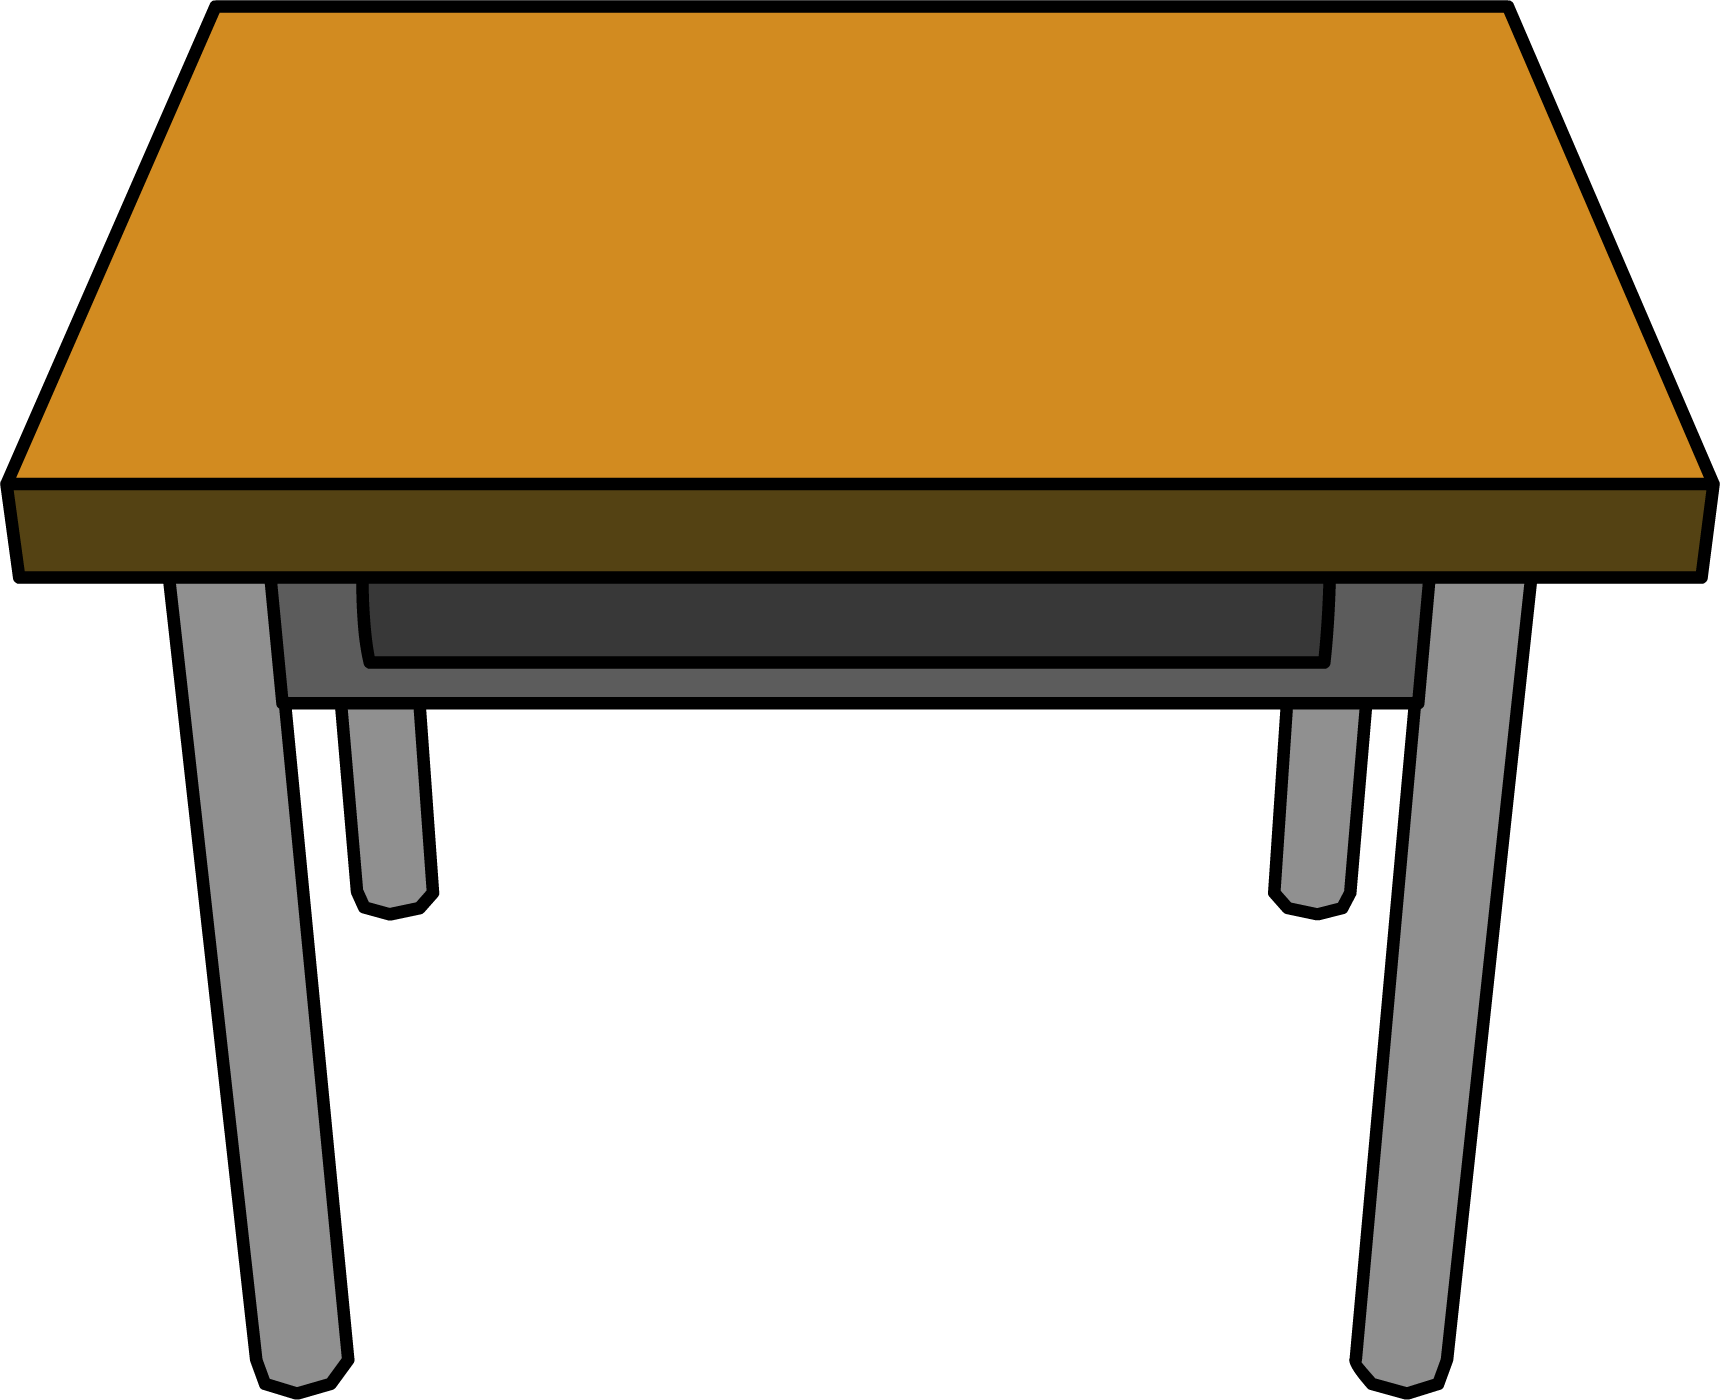 1720x1400 Table clipart student table